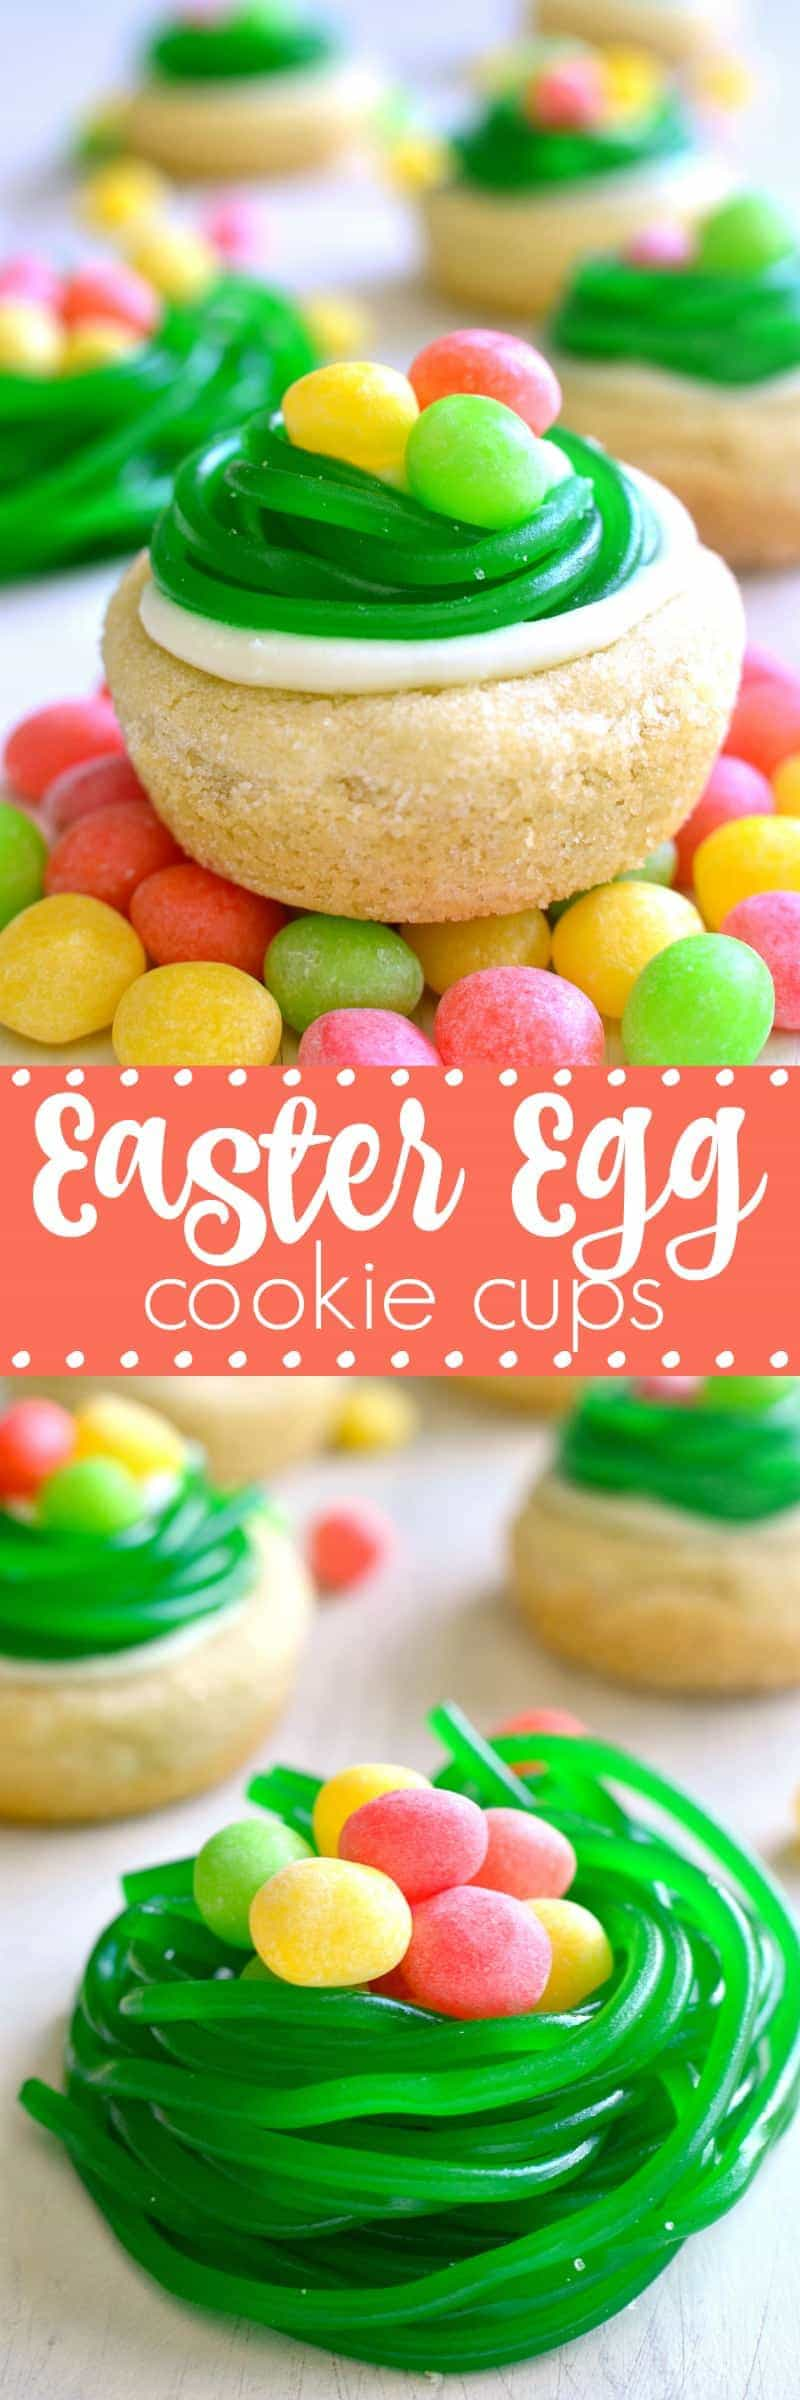 These Easter Egg Cookie Cups are easy, adorable, and so delicious! Made with sugar cookie dough, lemon buttercream, and 2 types of Easter candy, they're the perfect addition to any spring celebration!